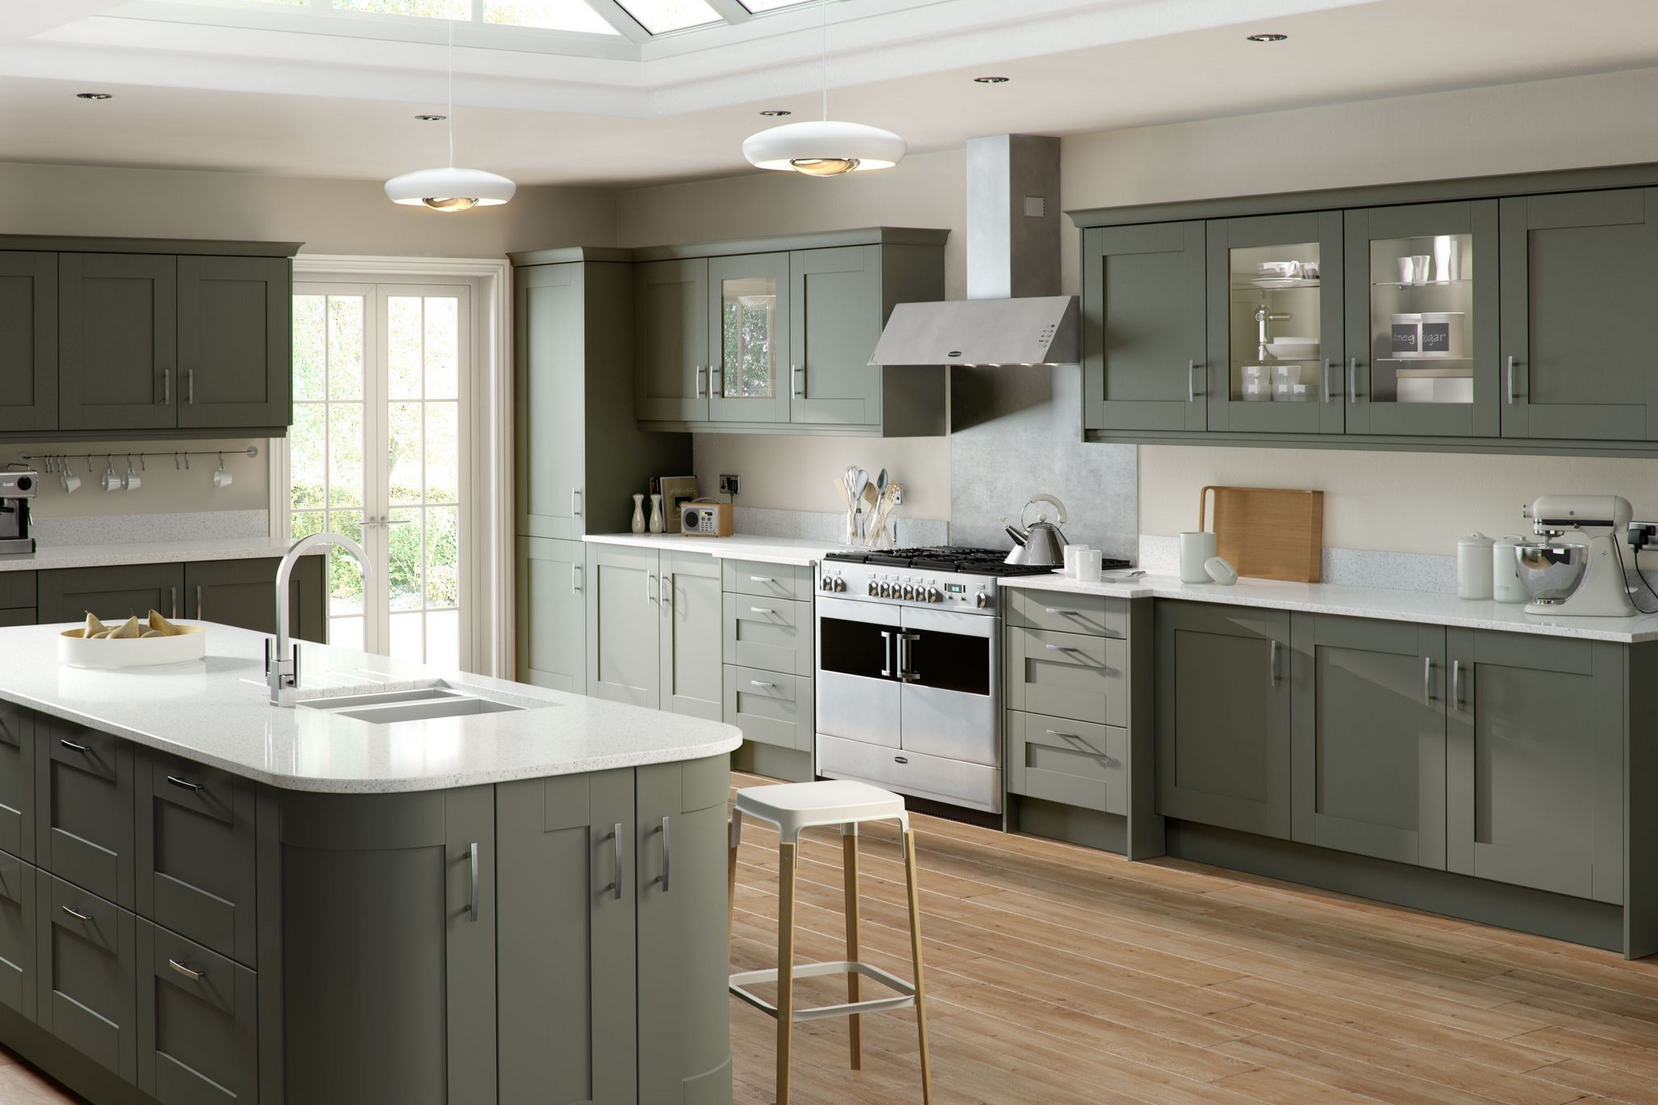 Home Kitchens Trade Mouldings Gresham Olive Shaker Kitchen